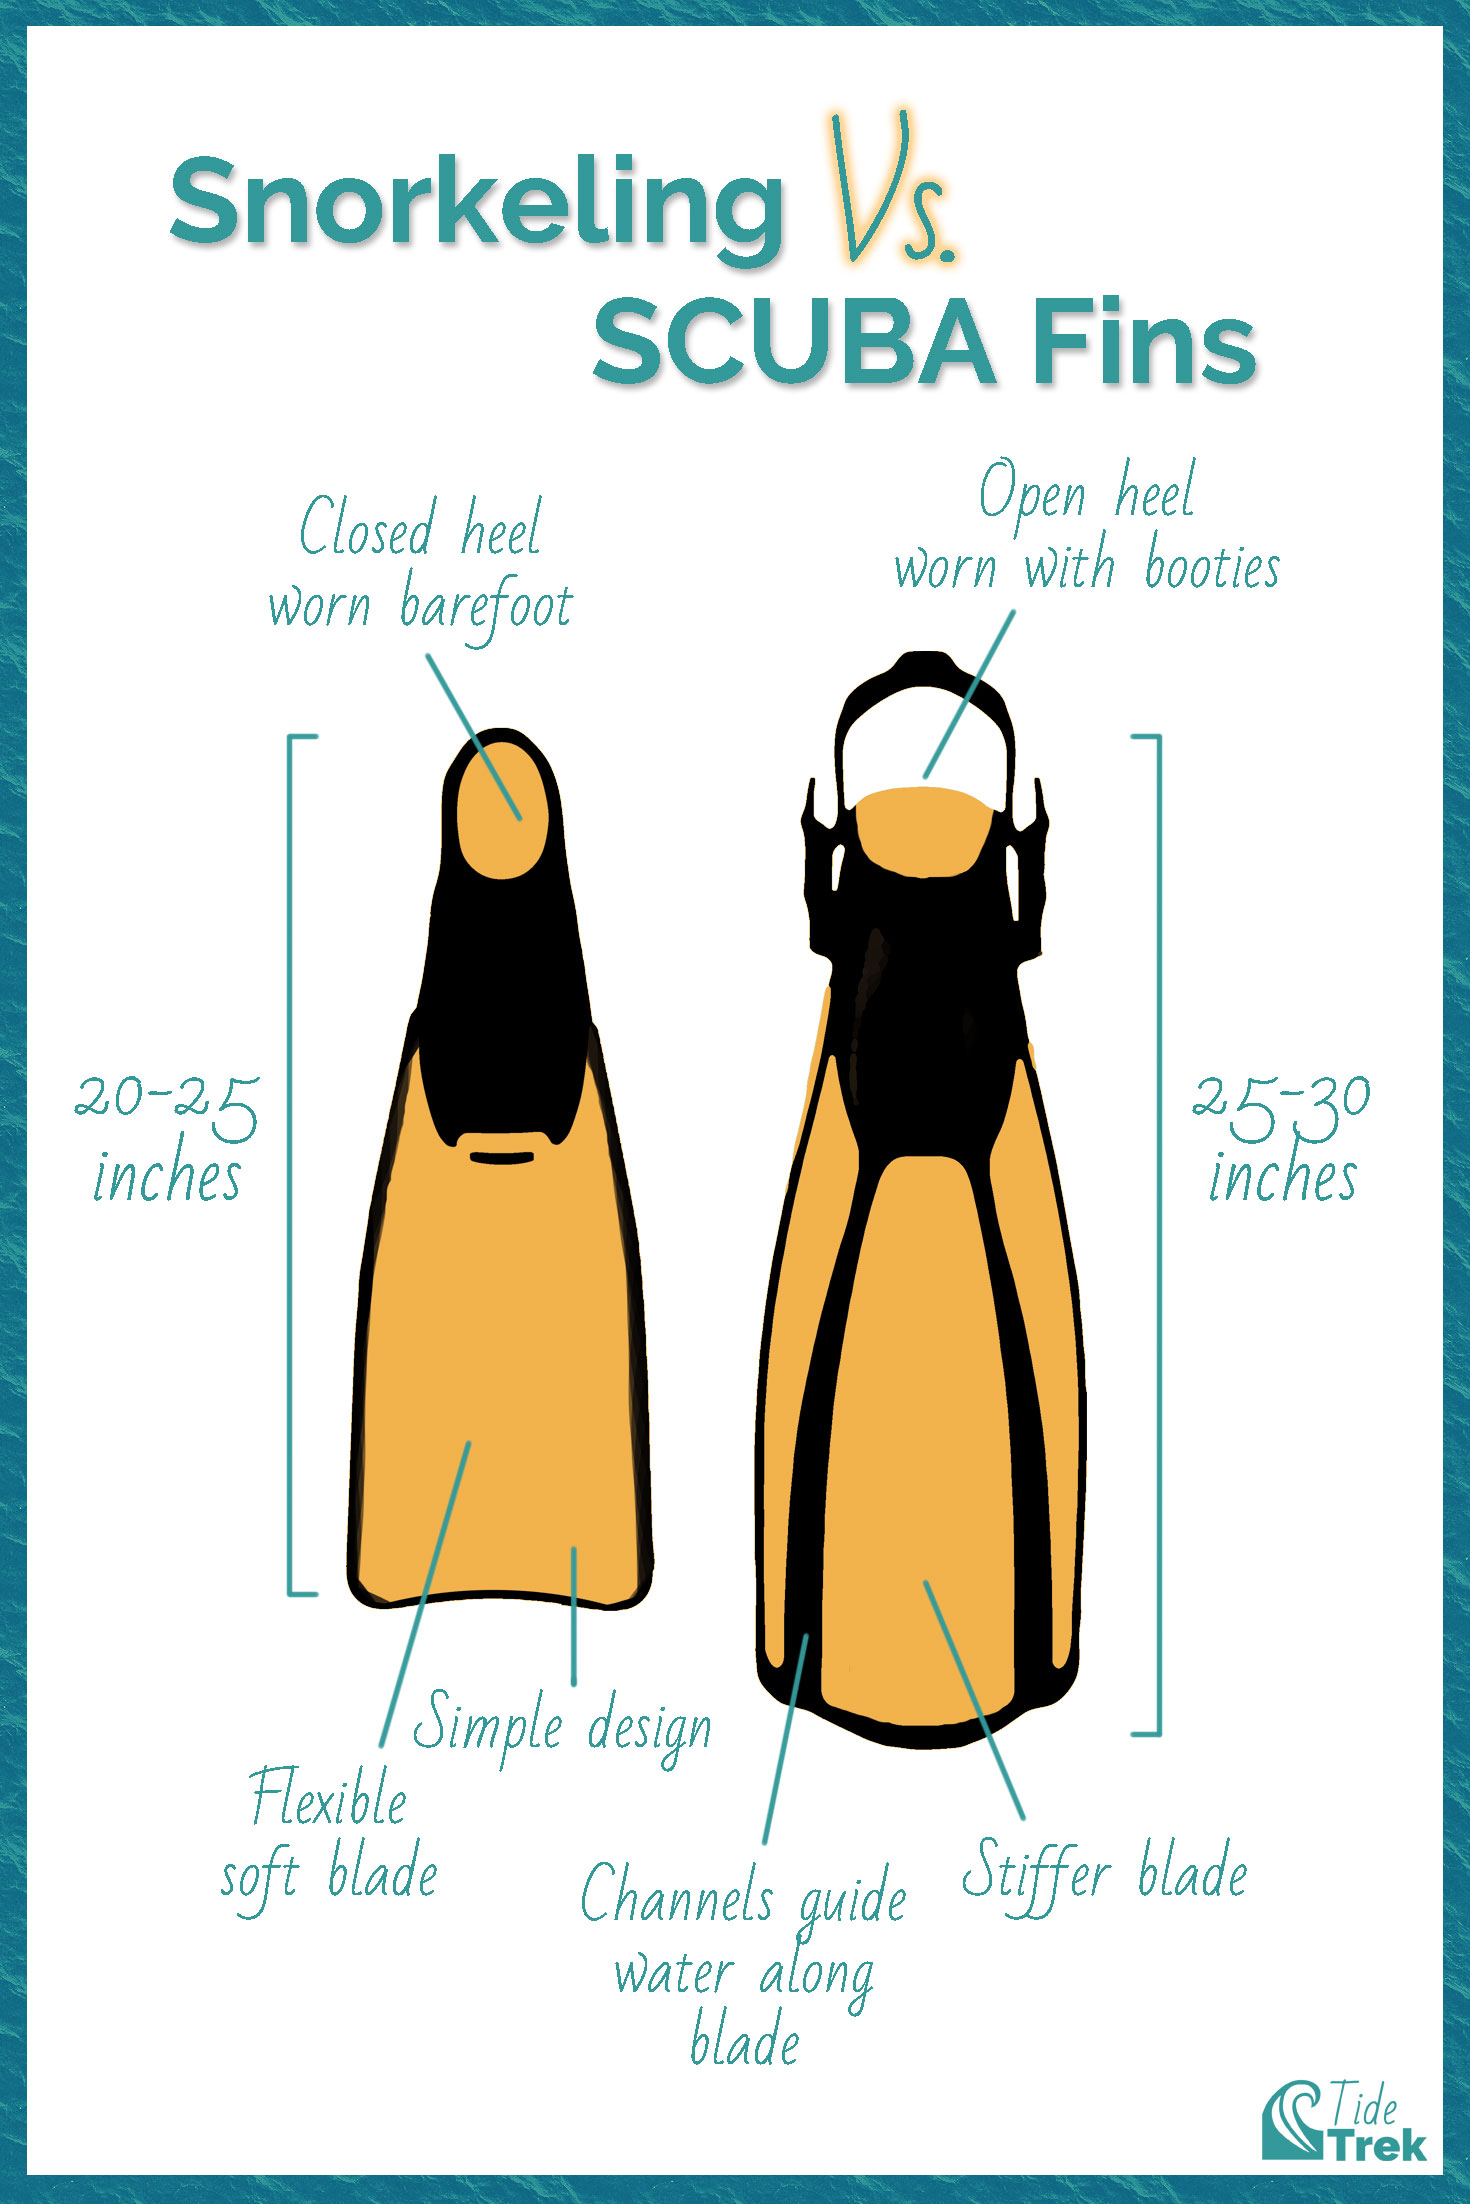 Simple diagram illustrating a typical snorkeling fin and scuba fin with text overlay pointing out their differences.